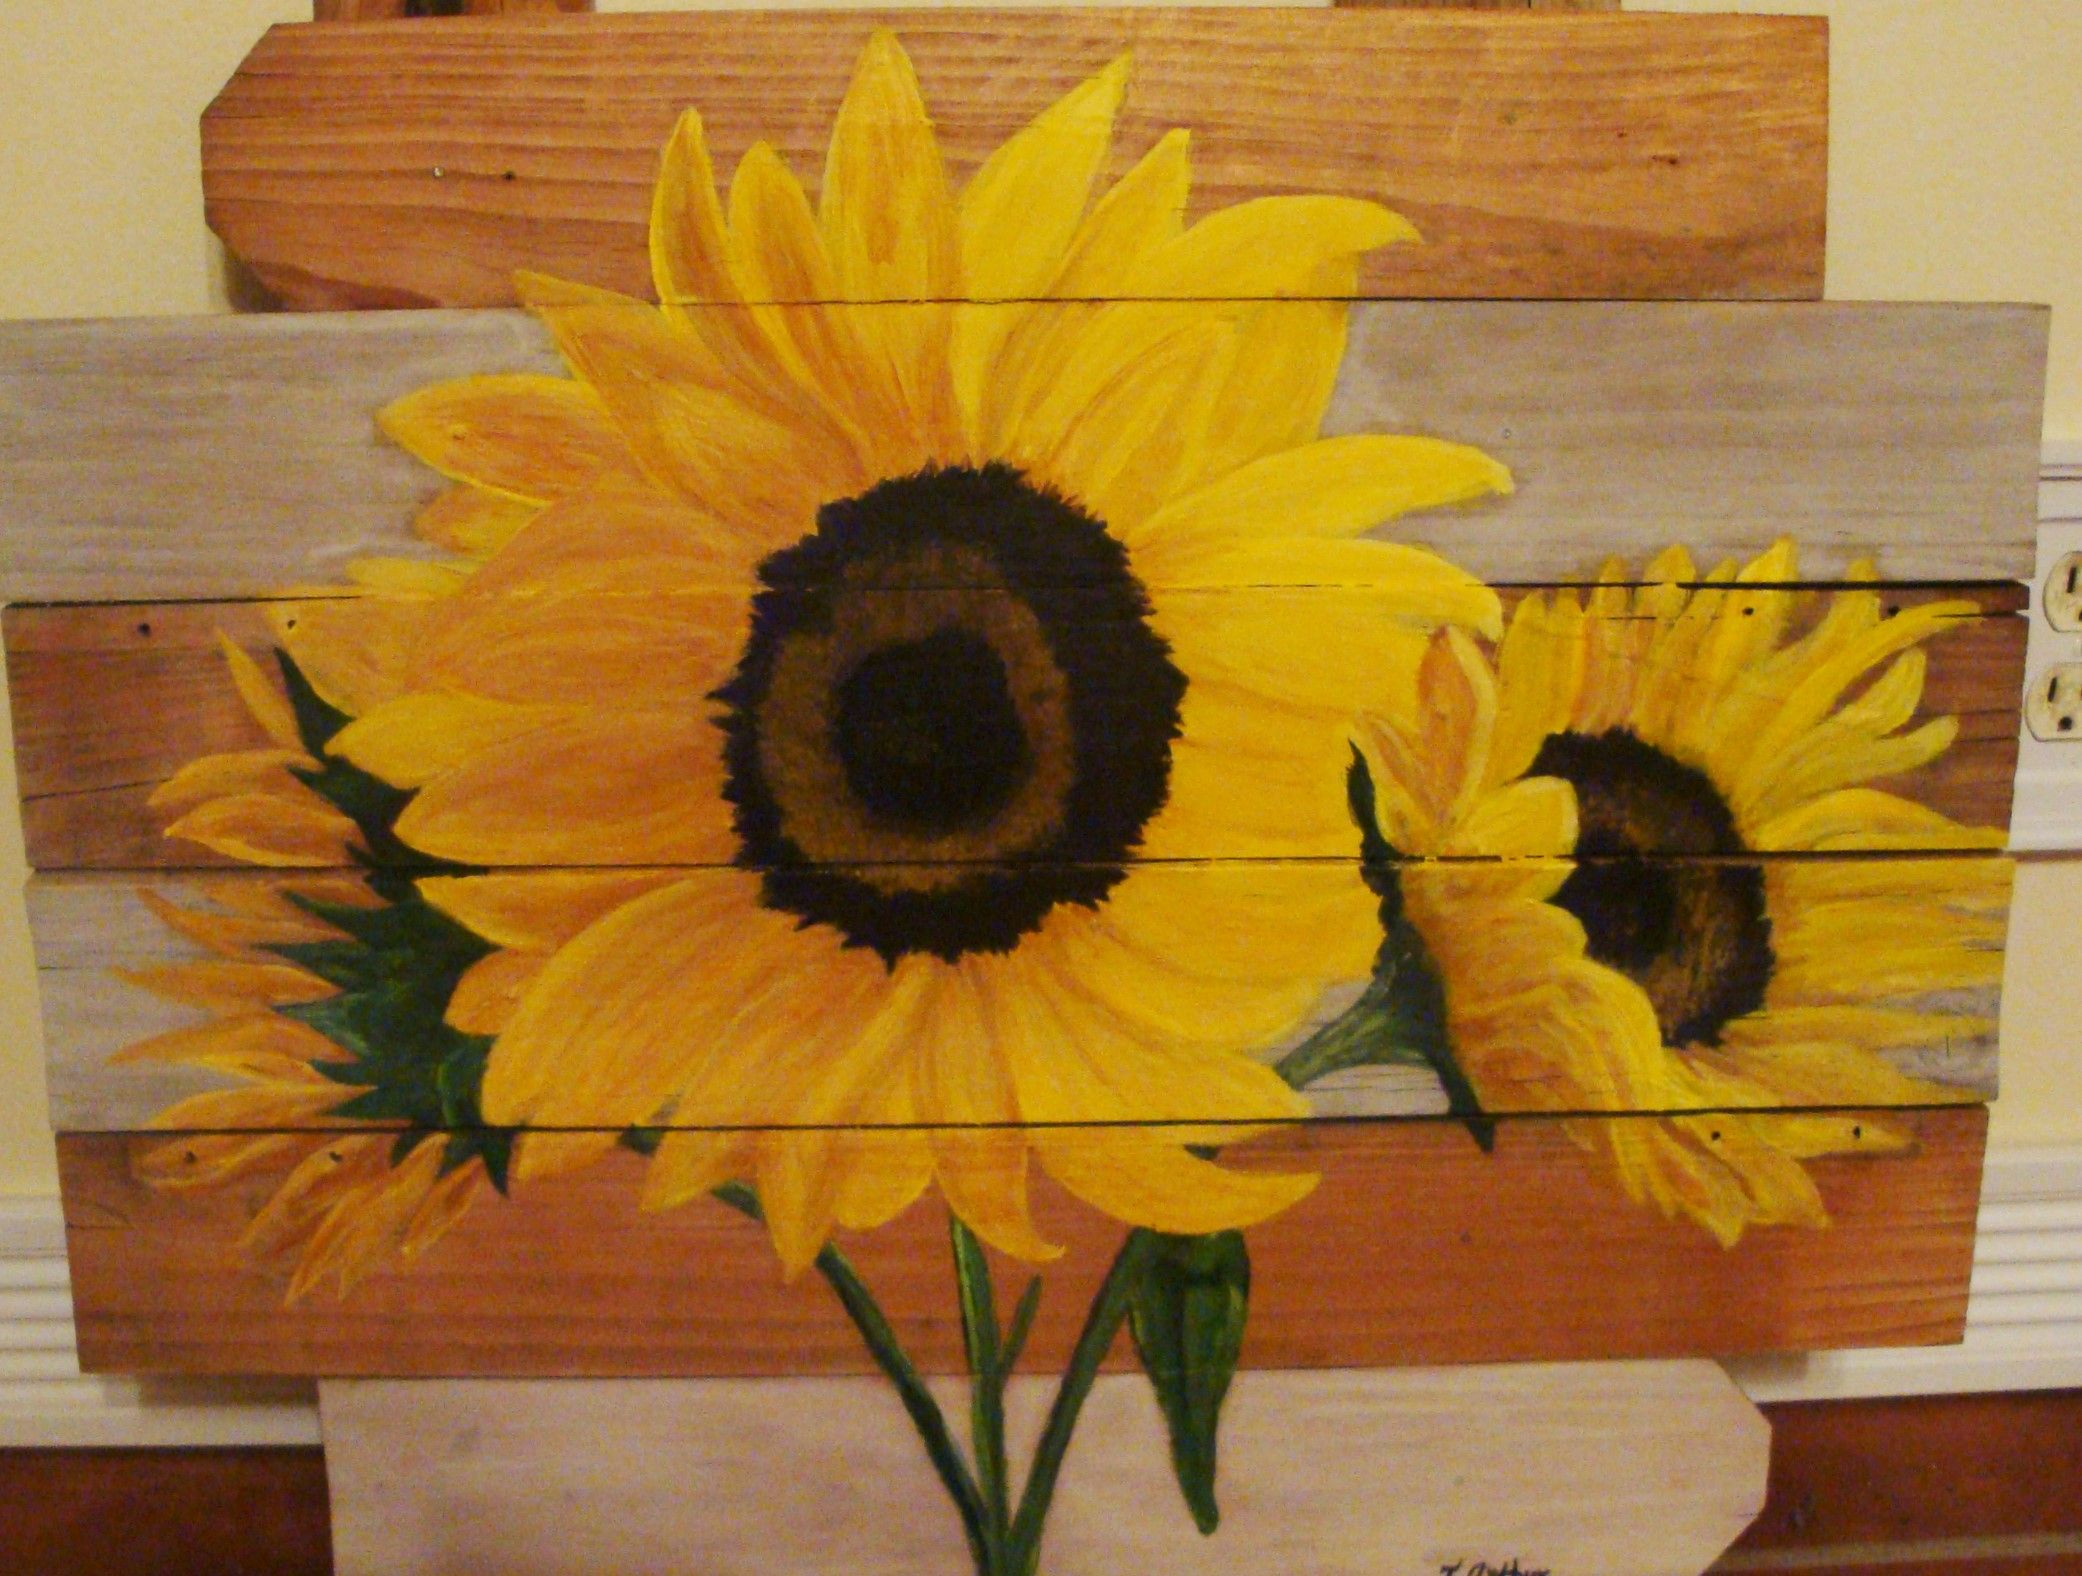 sunflower wall art created by me T.Arthur...made from repurposed ...